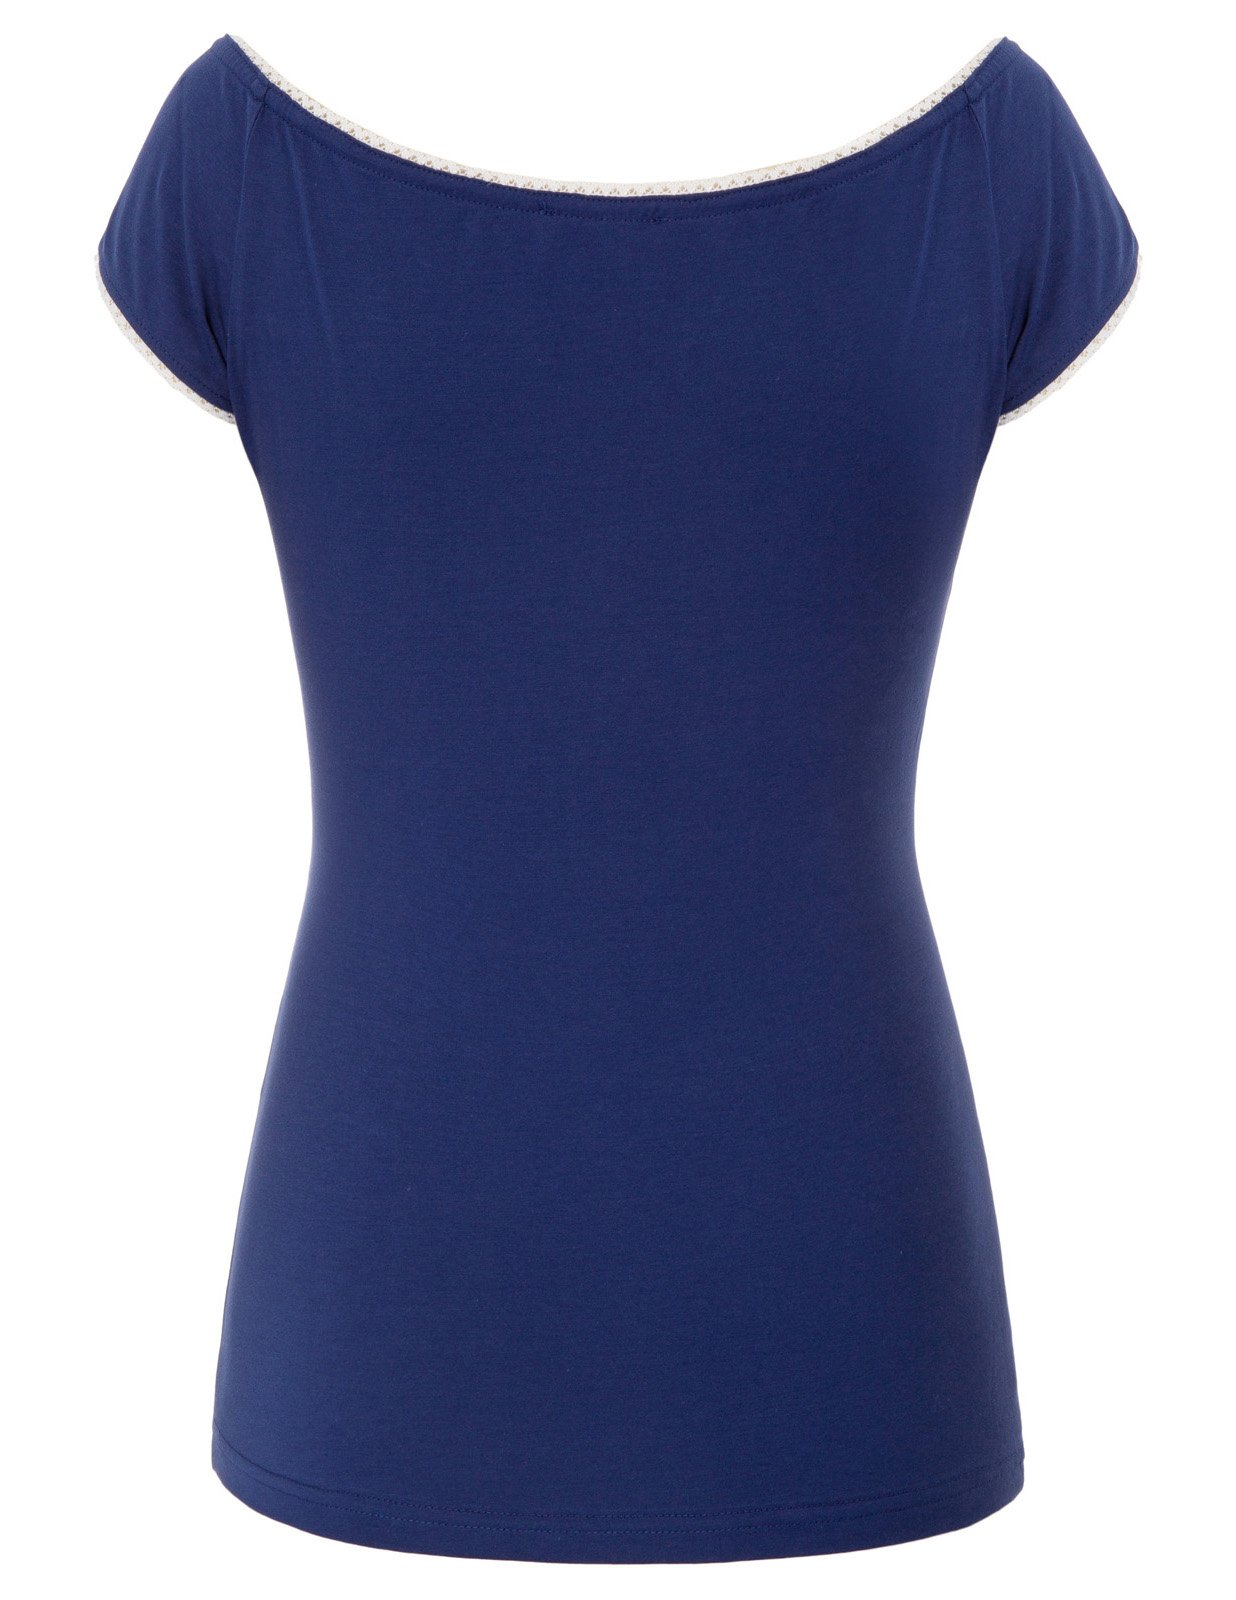 Belle Poque Women's Vintage Short Sleeve Tie Neck Tops Sexy T-Shirts Navy Blue Size M BP601-2 by Belle Poque (Image #2)